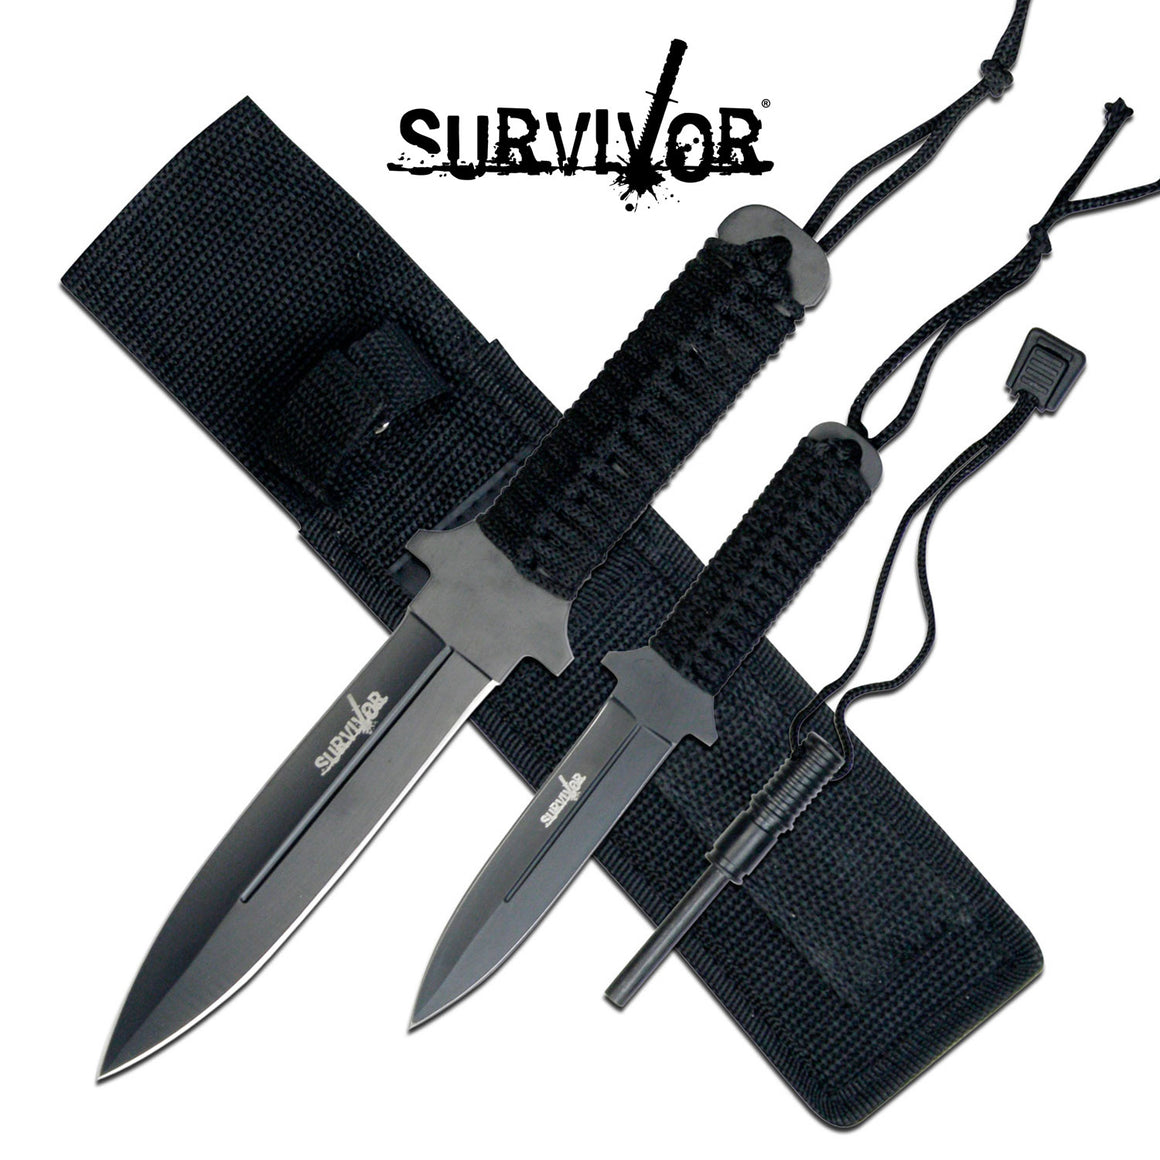 Survivor HK-1035 Combo Knife Set